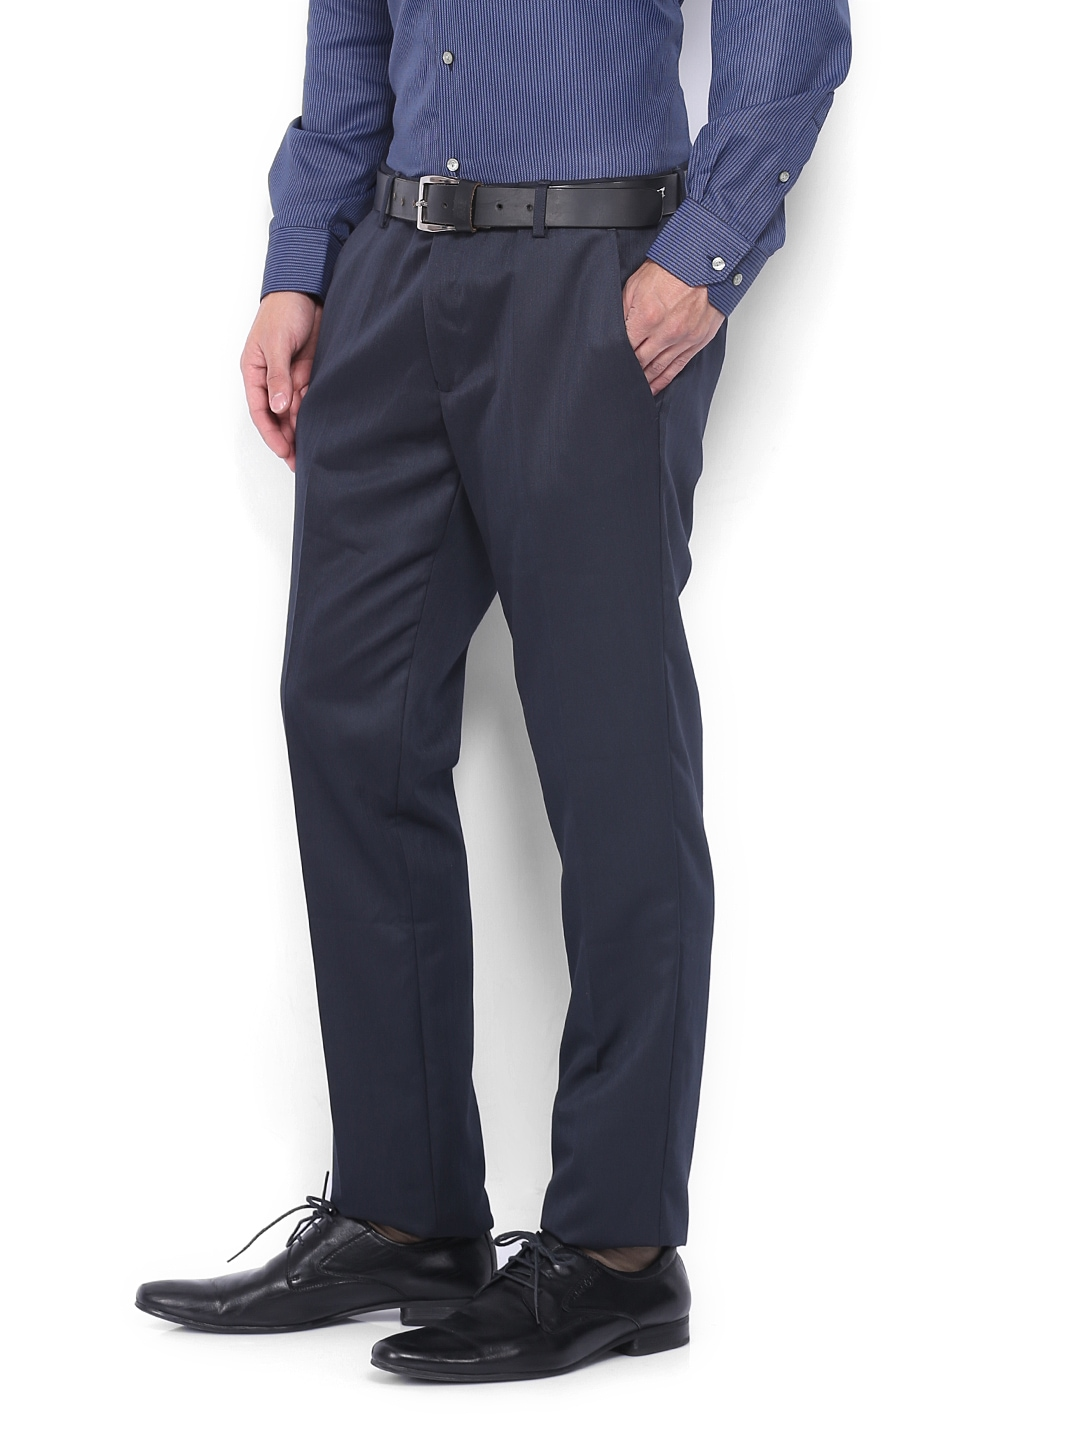 c645b94f1b6 Buy Black Coffee Men Dark Blue Sharp Slim Fit Formal Trousers (multicolor)  1364661 for men online in india on Myntra at Yebhi.com